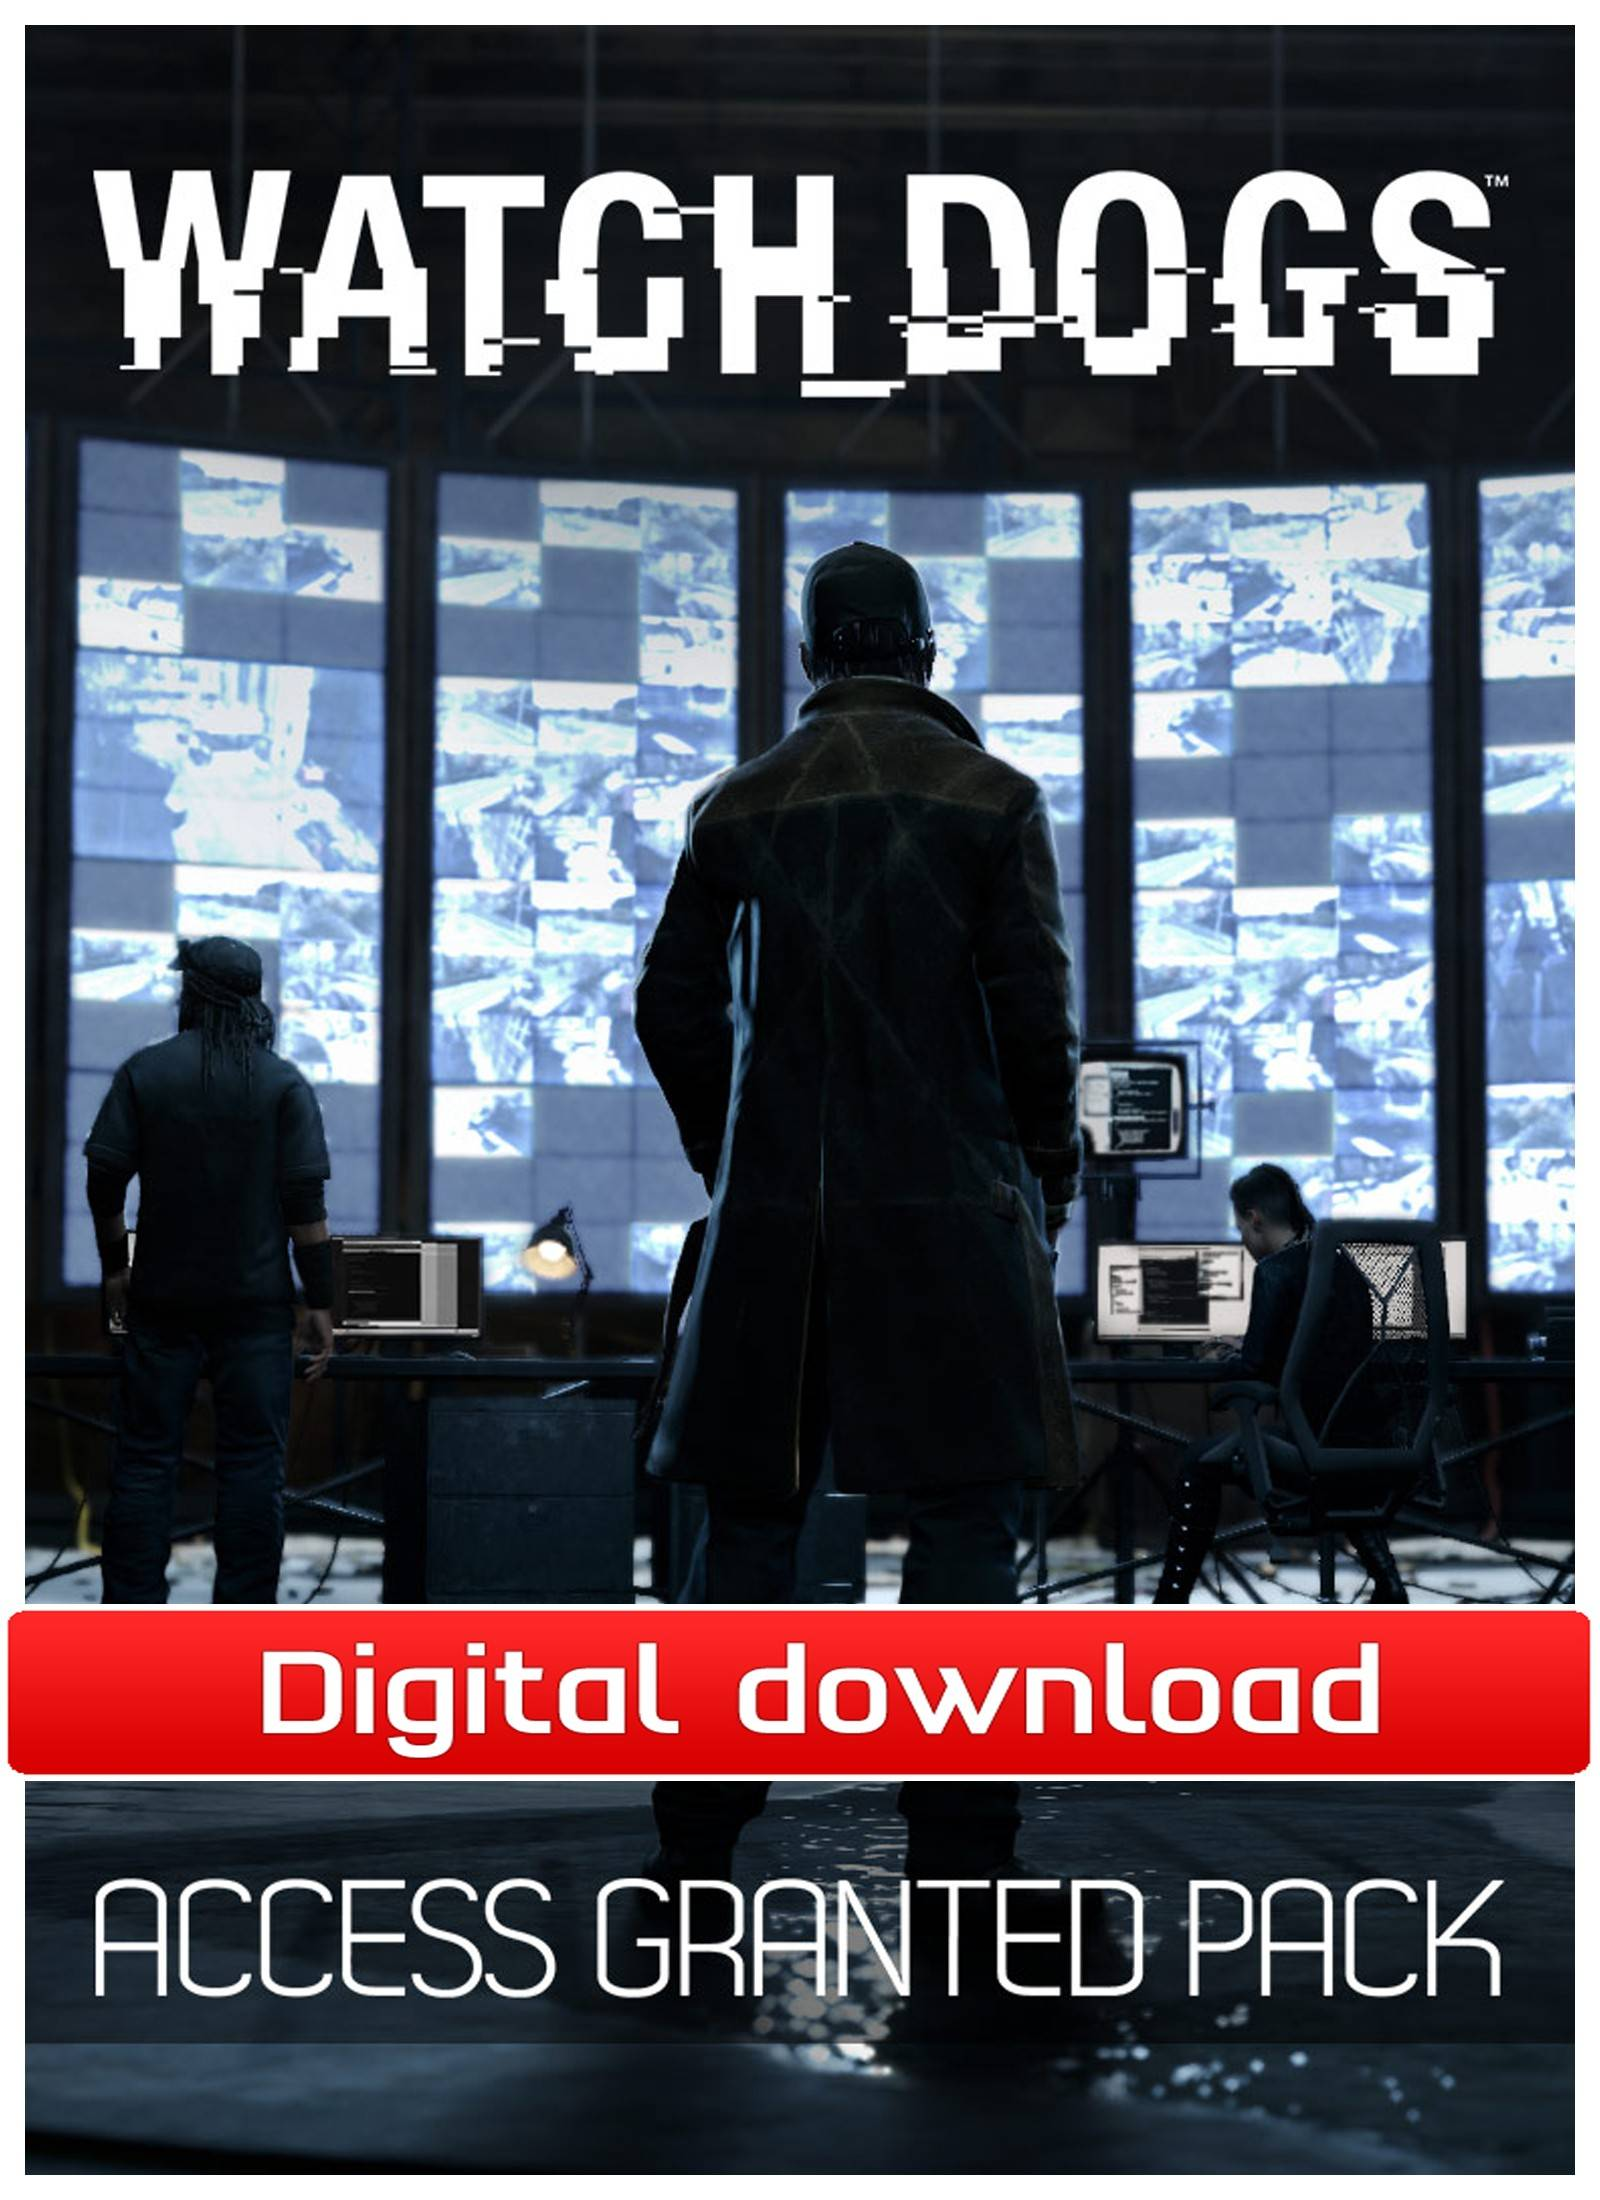 Ubisoft Watch Dogs DLC 2 - Access Granted Pack (Download)